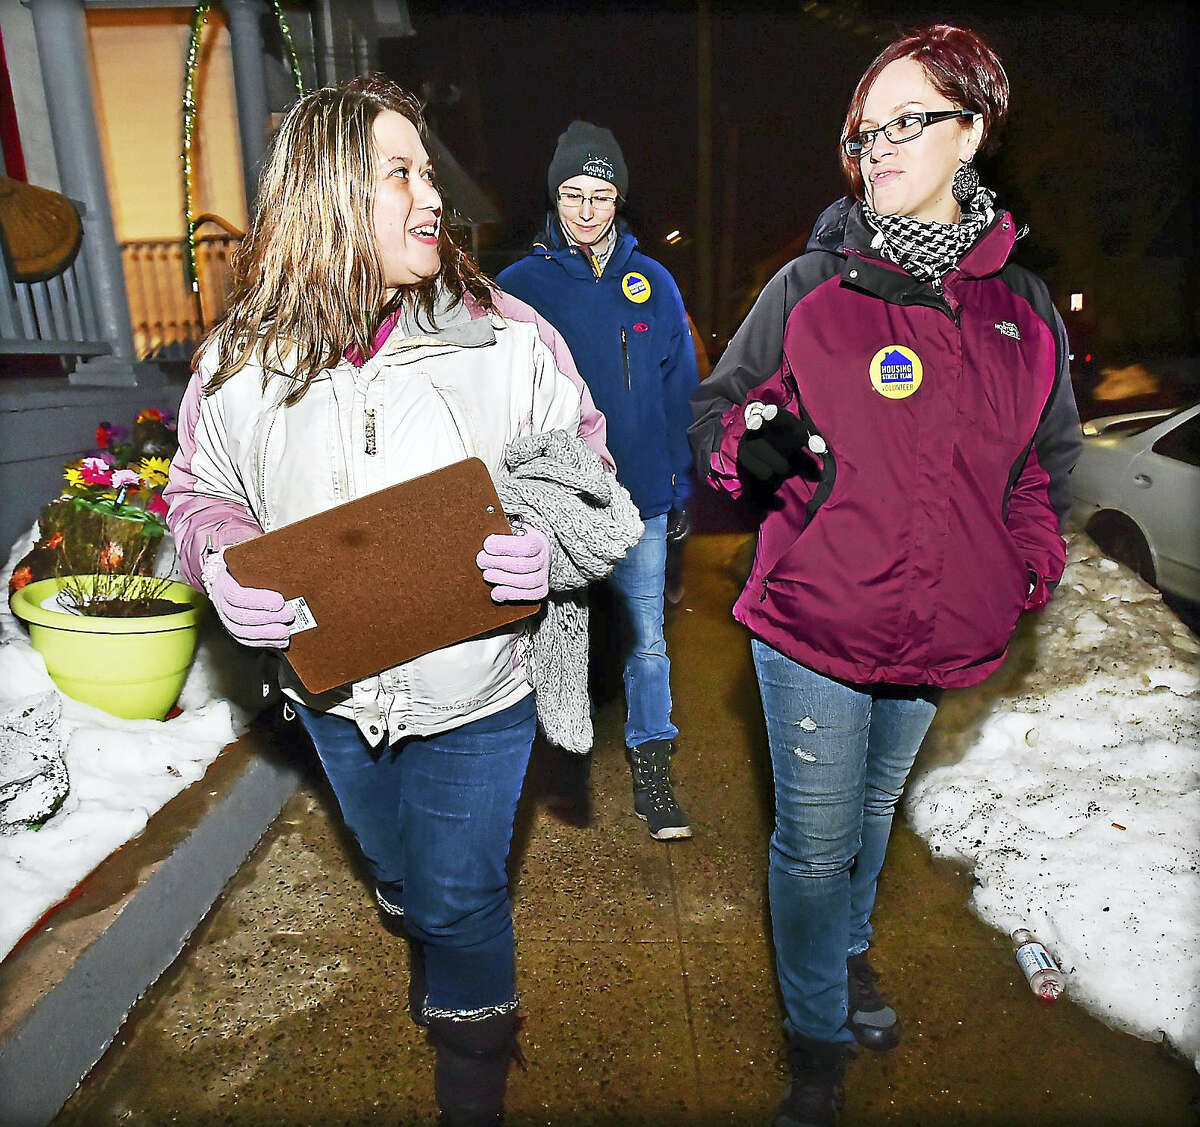 Team leader Veronica Cruz talks to Derby resident Jennifer Olivieri, who grew up in the Fair Haven section of New Haven, as the group looks for homeless individuals during the 2016 Point in Time Homeless Count on Jan. 26.